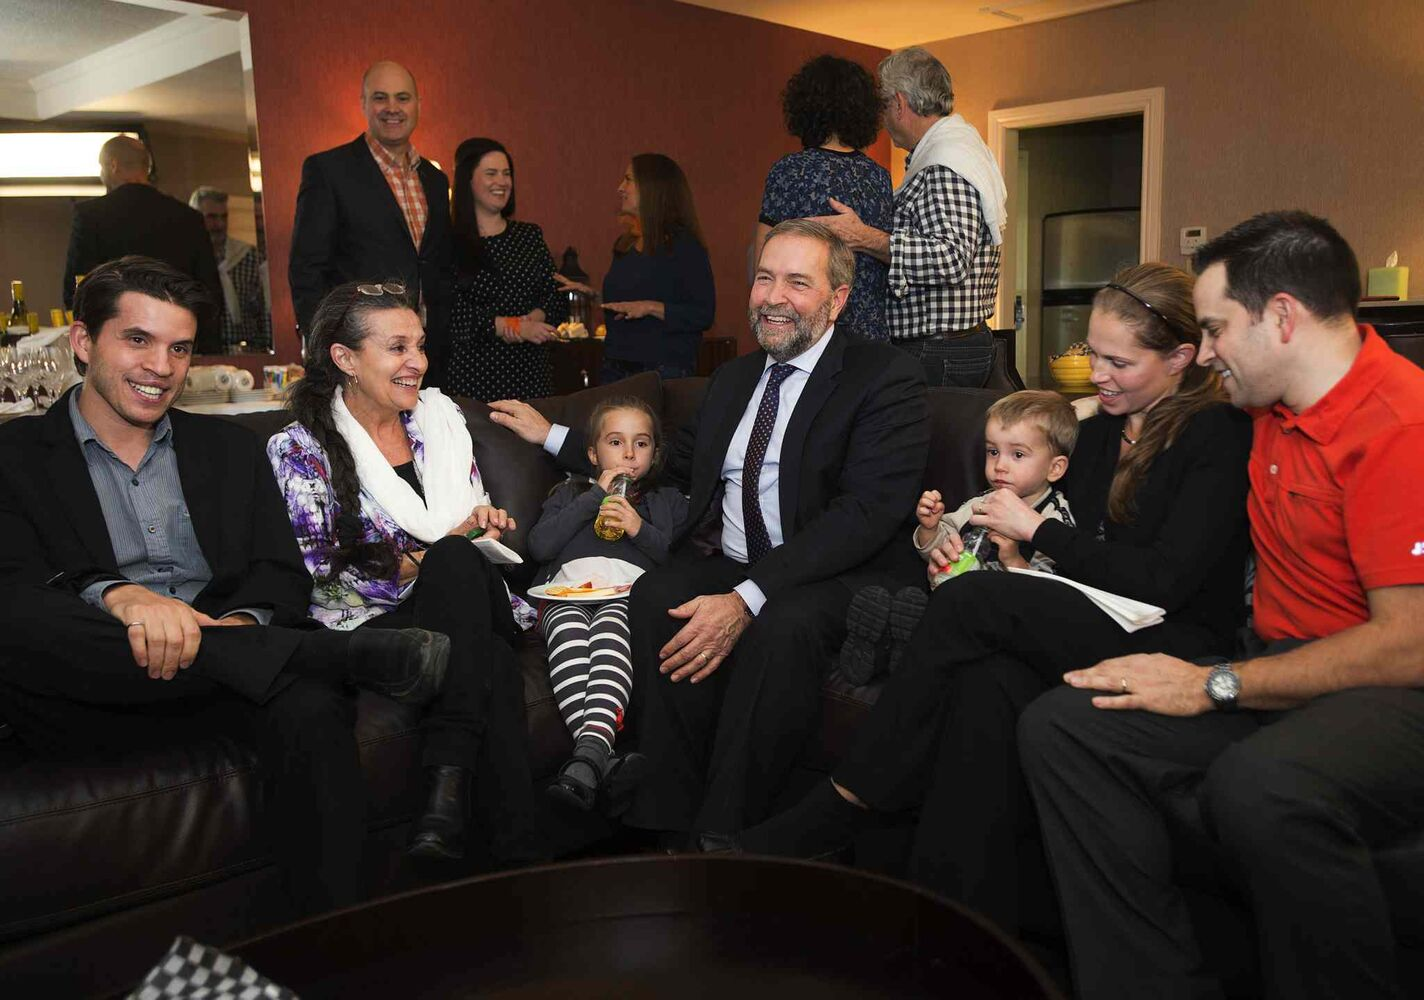 NDP leader Tom Mulcair watches the results come in with his son, Greg, left, wife Catherine, granddaughter Juliette, and grandson Raphael,  daughter-in-law, Jasmine, and son Matthew Monday, October 19, 2015 in Montreal.  THE CANADIAN PRESS/Ryan Remiorz (CP)